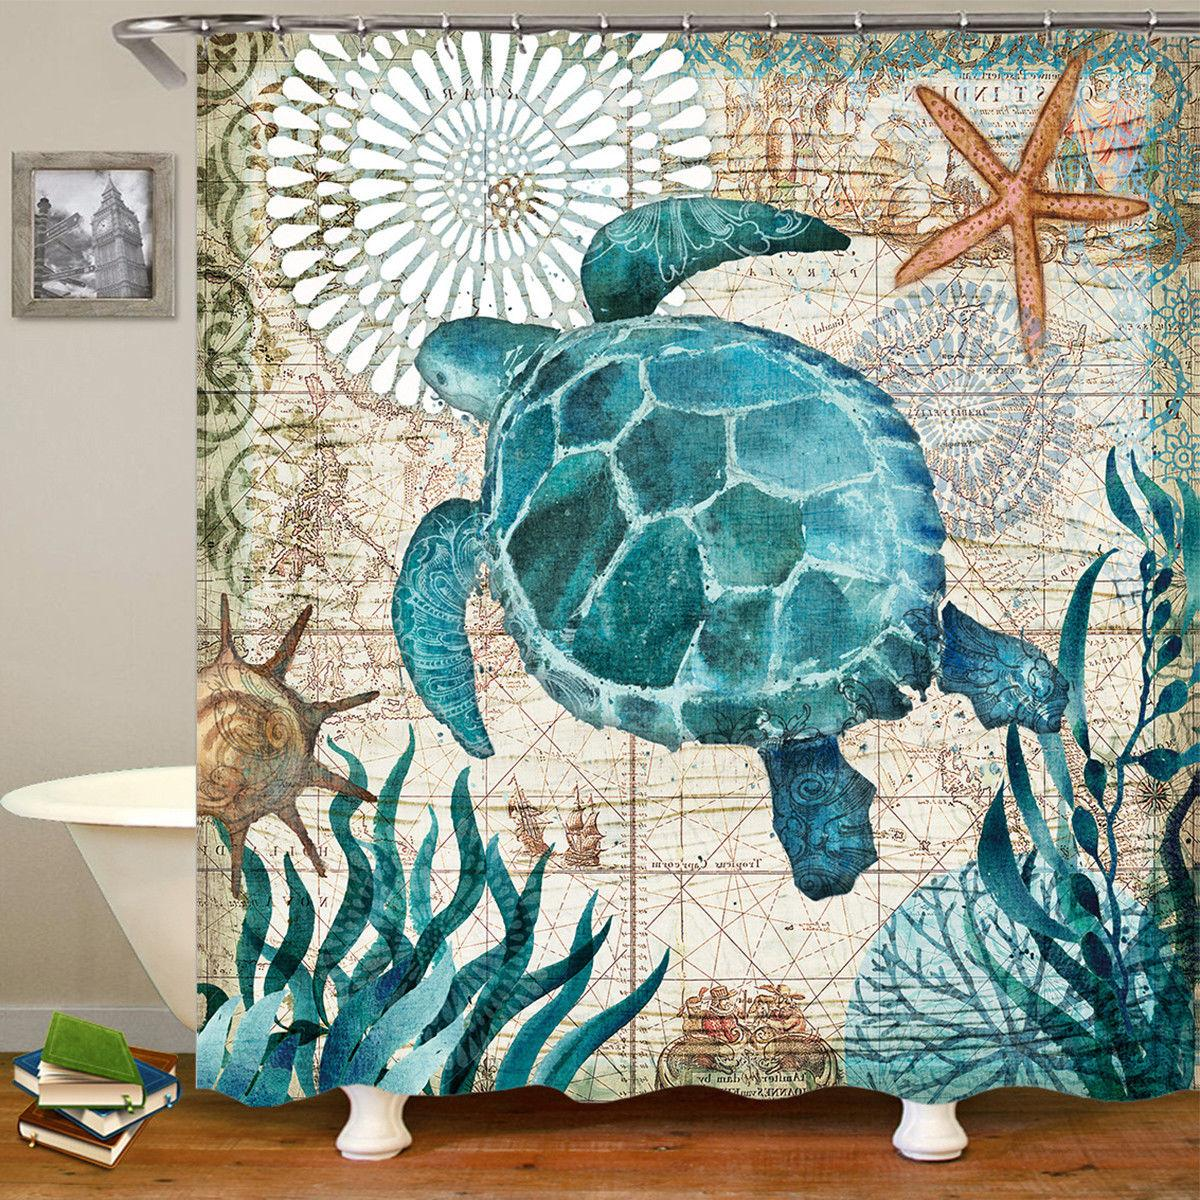 Sea Turtles Polyester Shower Curtain Toilet Rugs Mat Set